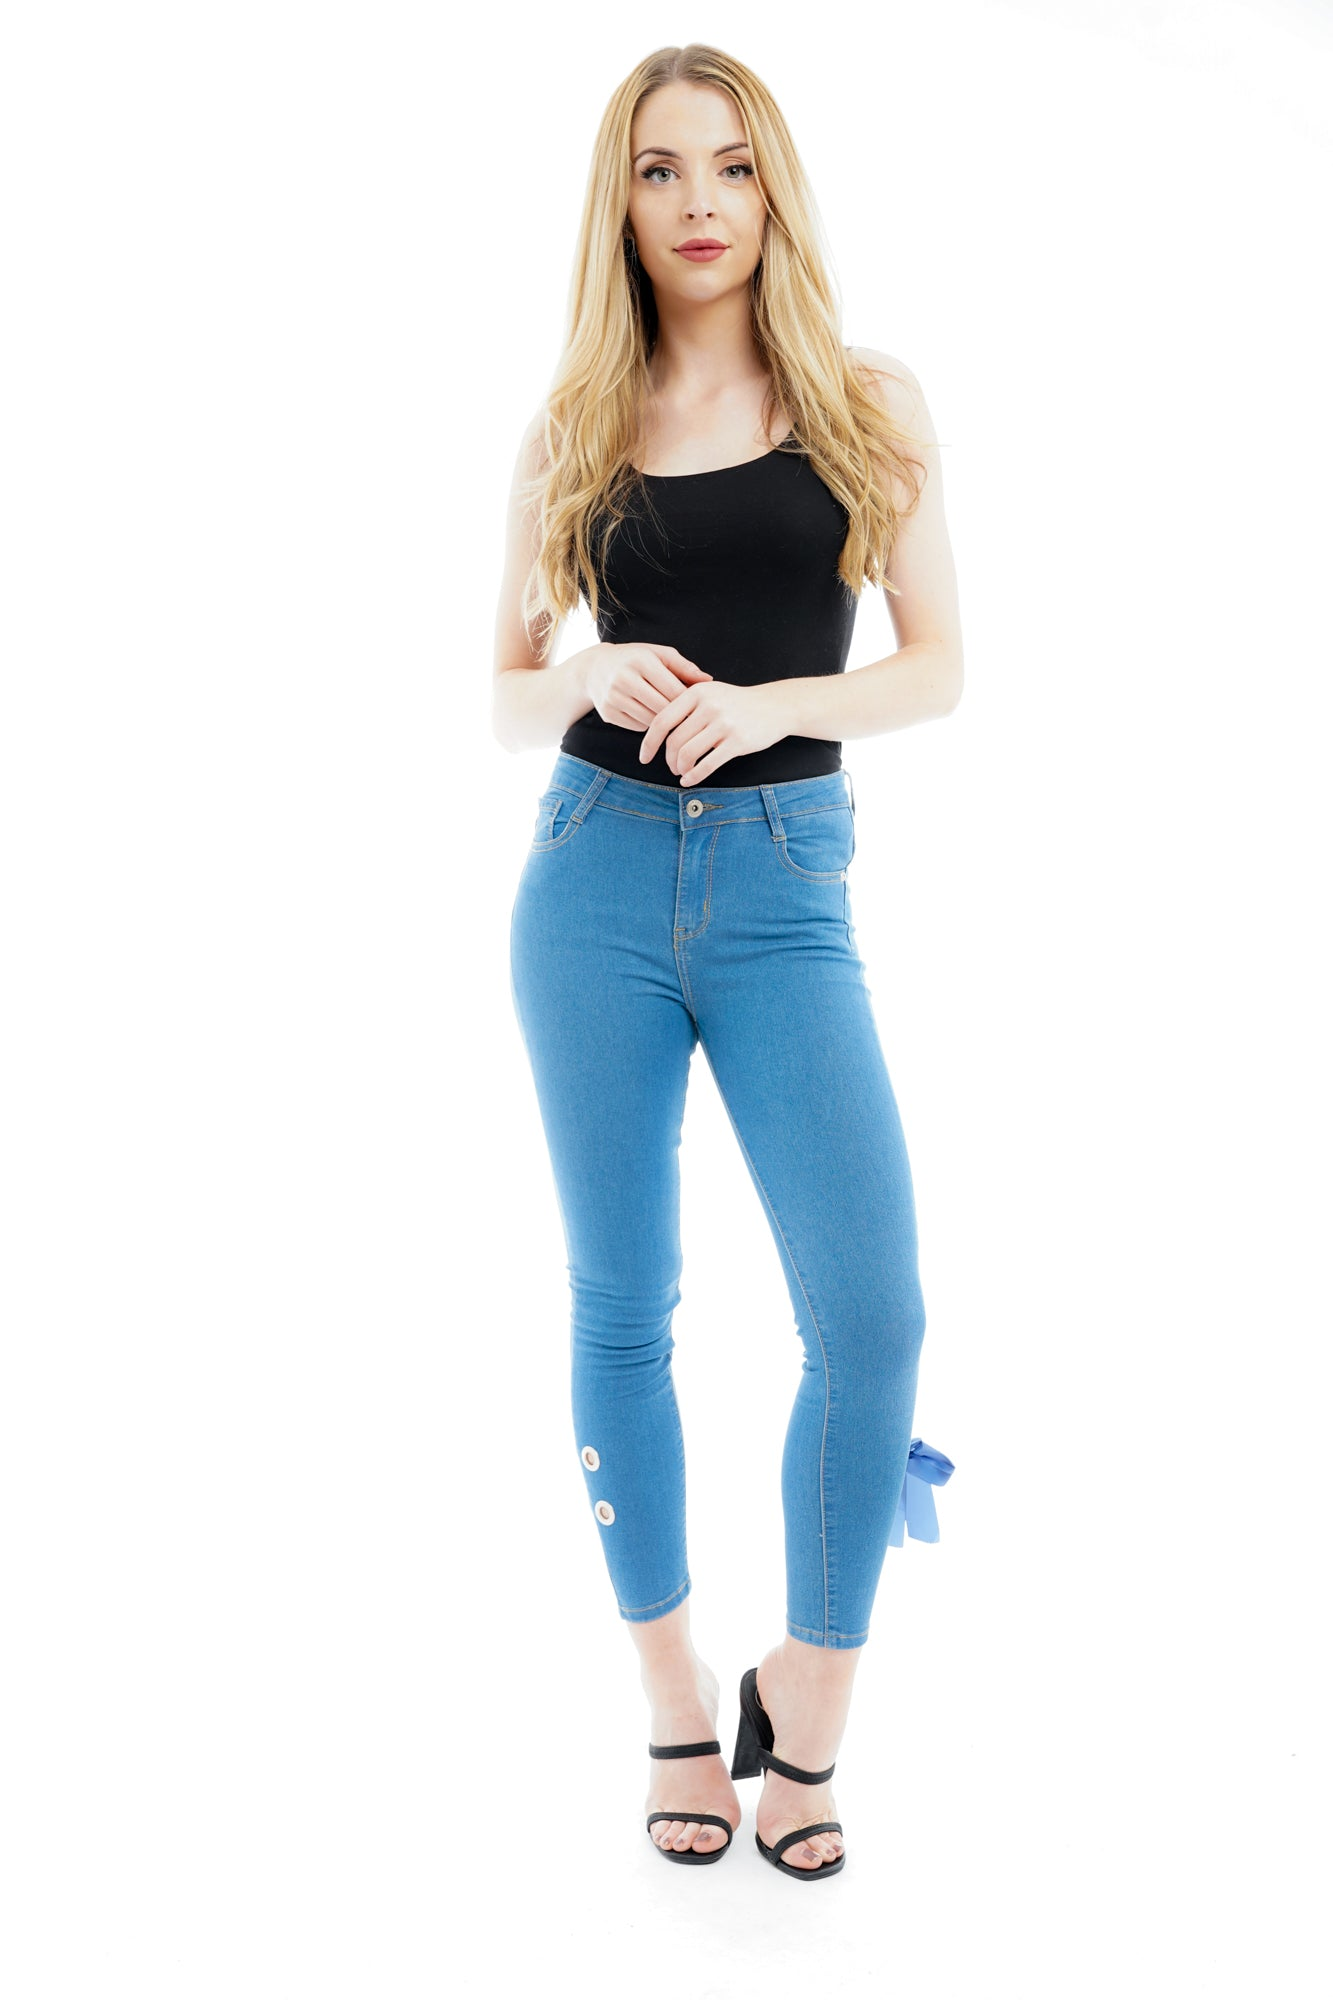 Denim Blue Ribbon Bow Tie Skinny Jeans @gracemooneyyy